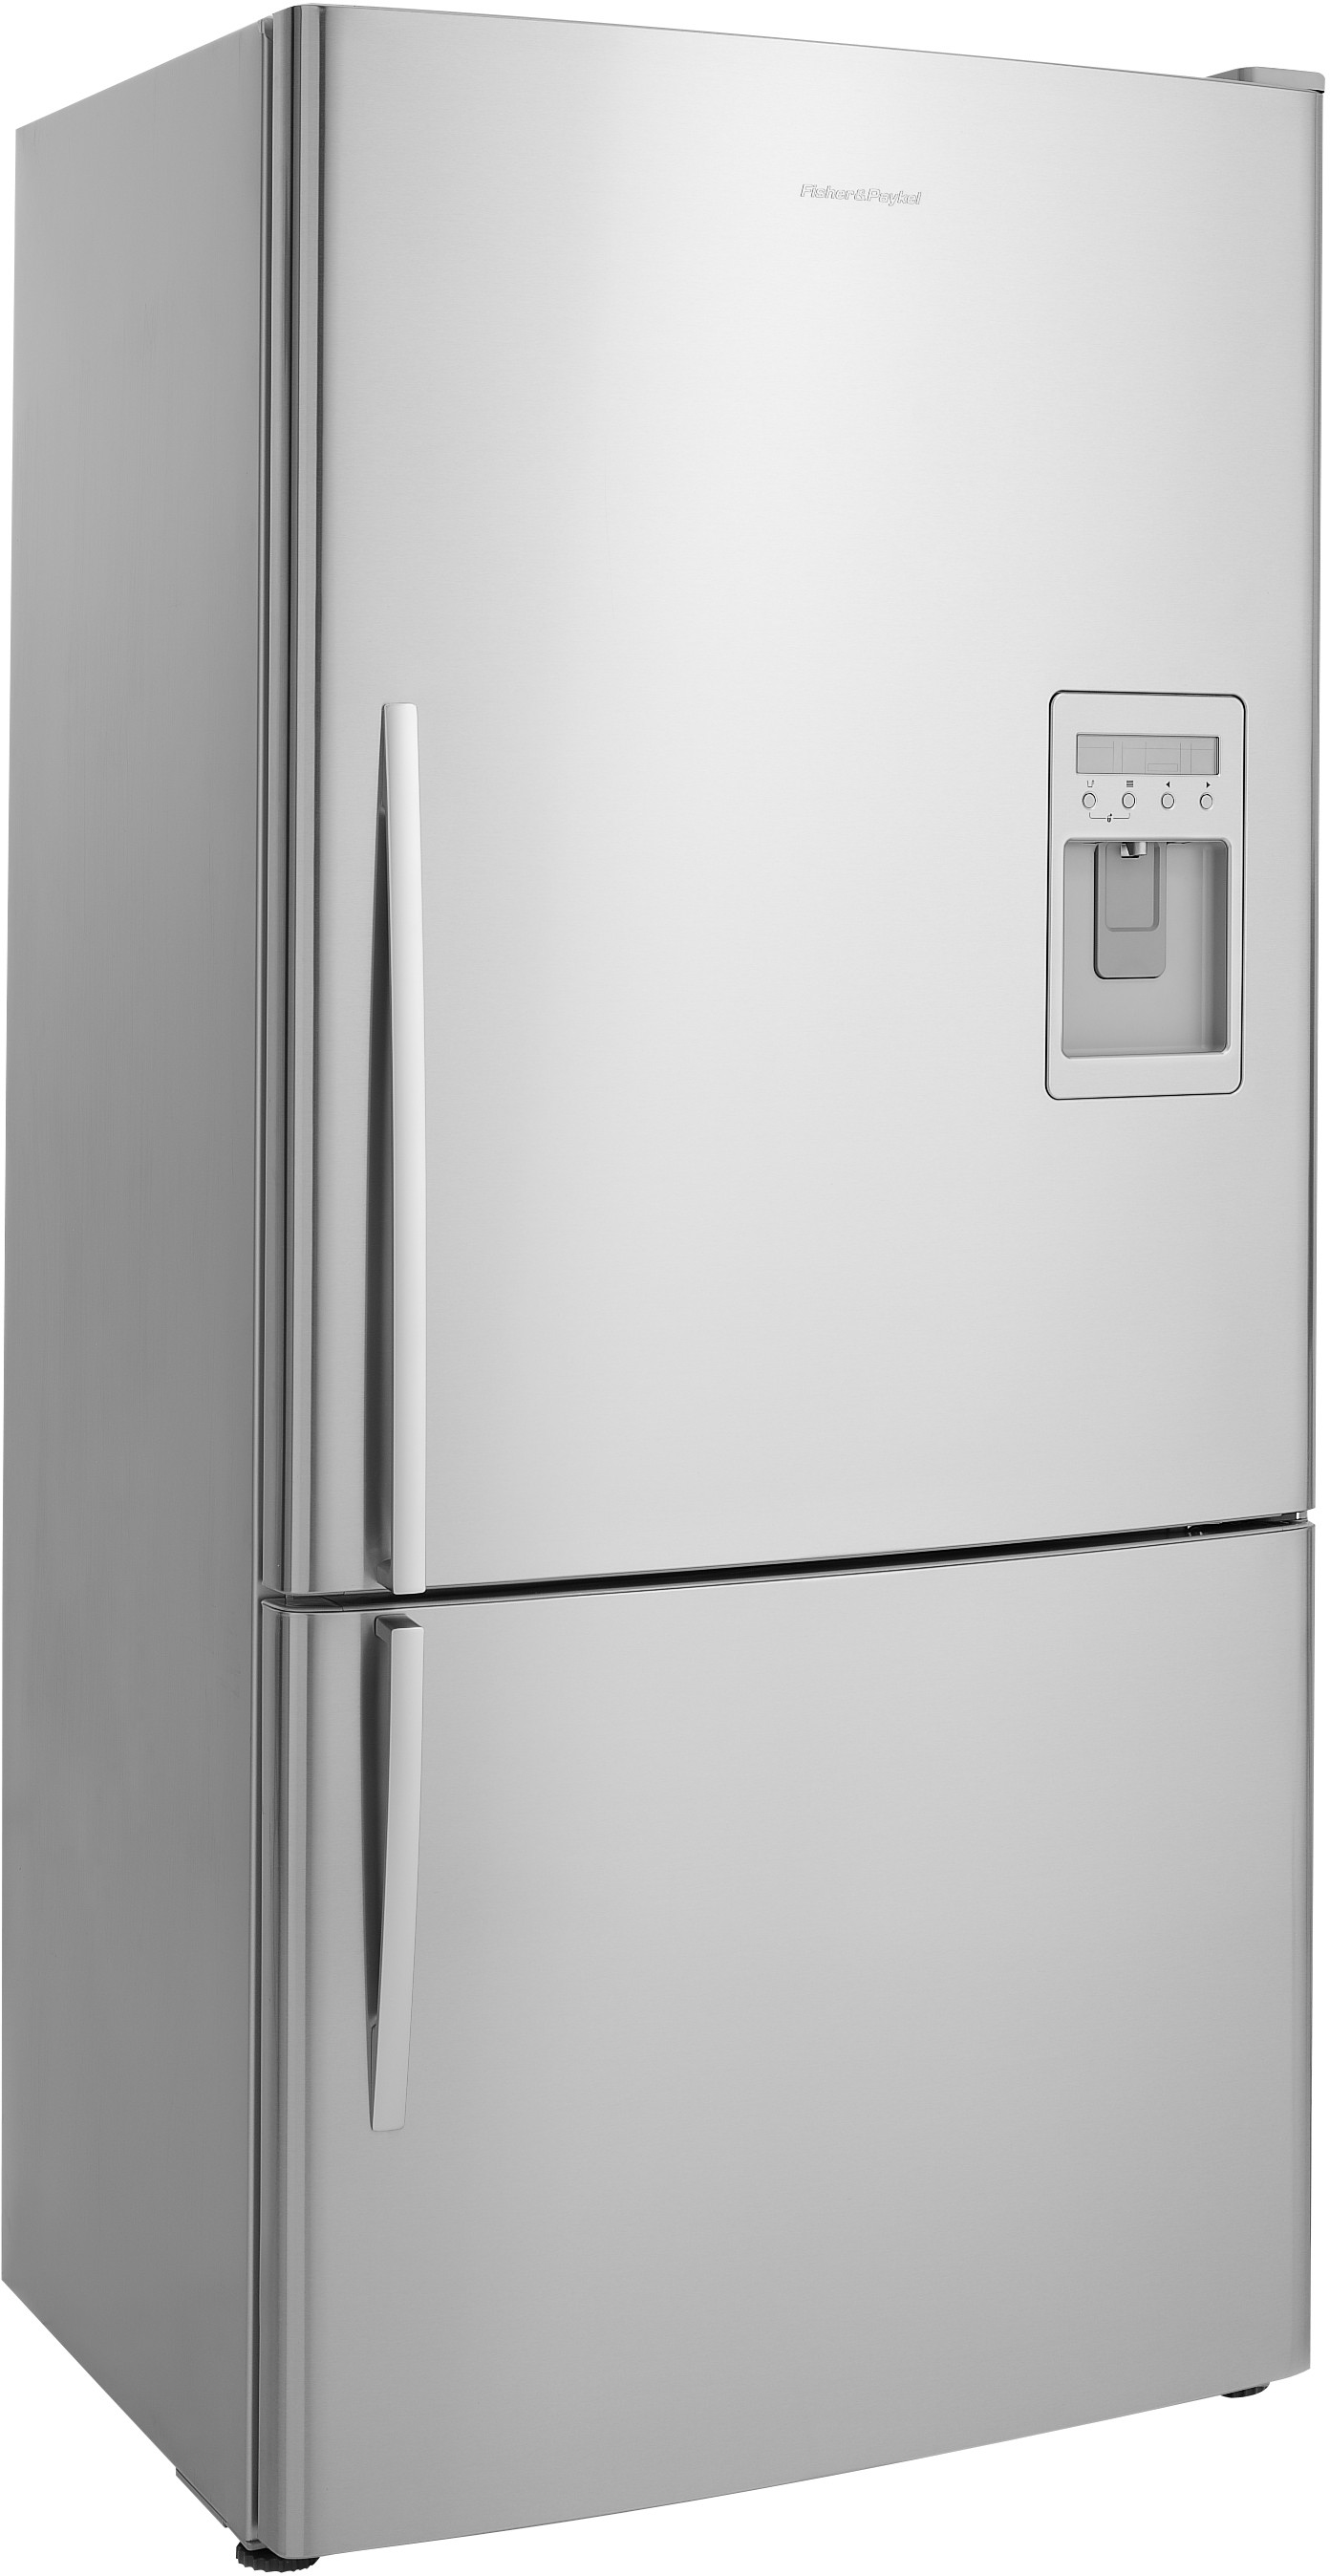 Fisher Amp Paykel E522brxu 17 6 Cu Ft Counter Depth Bottom